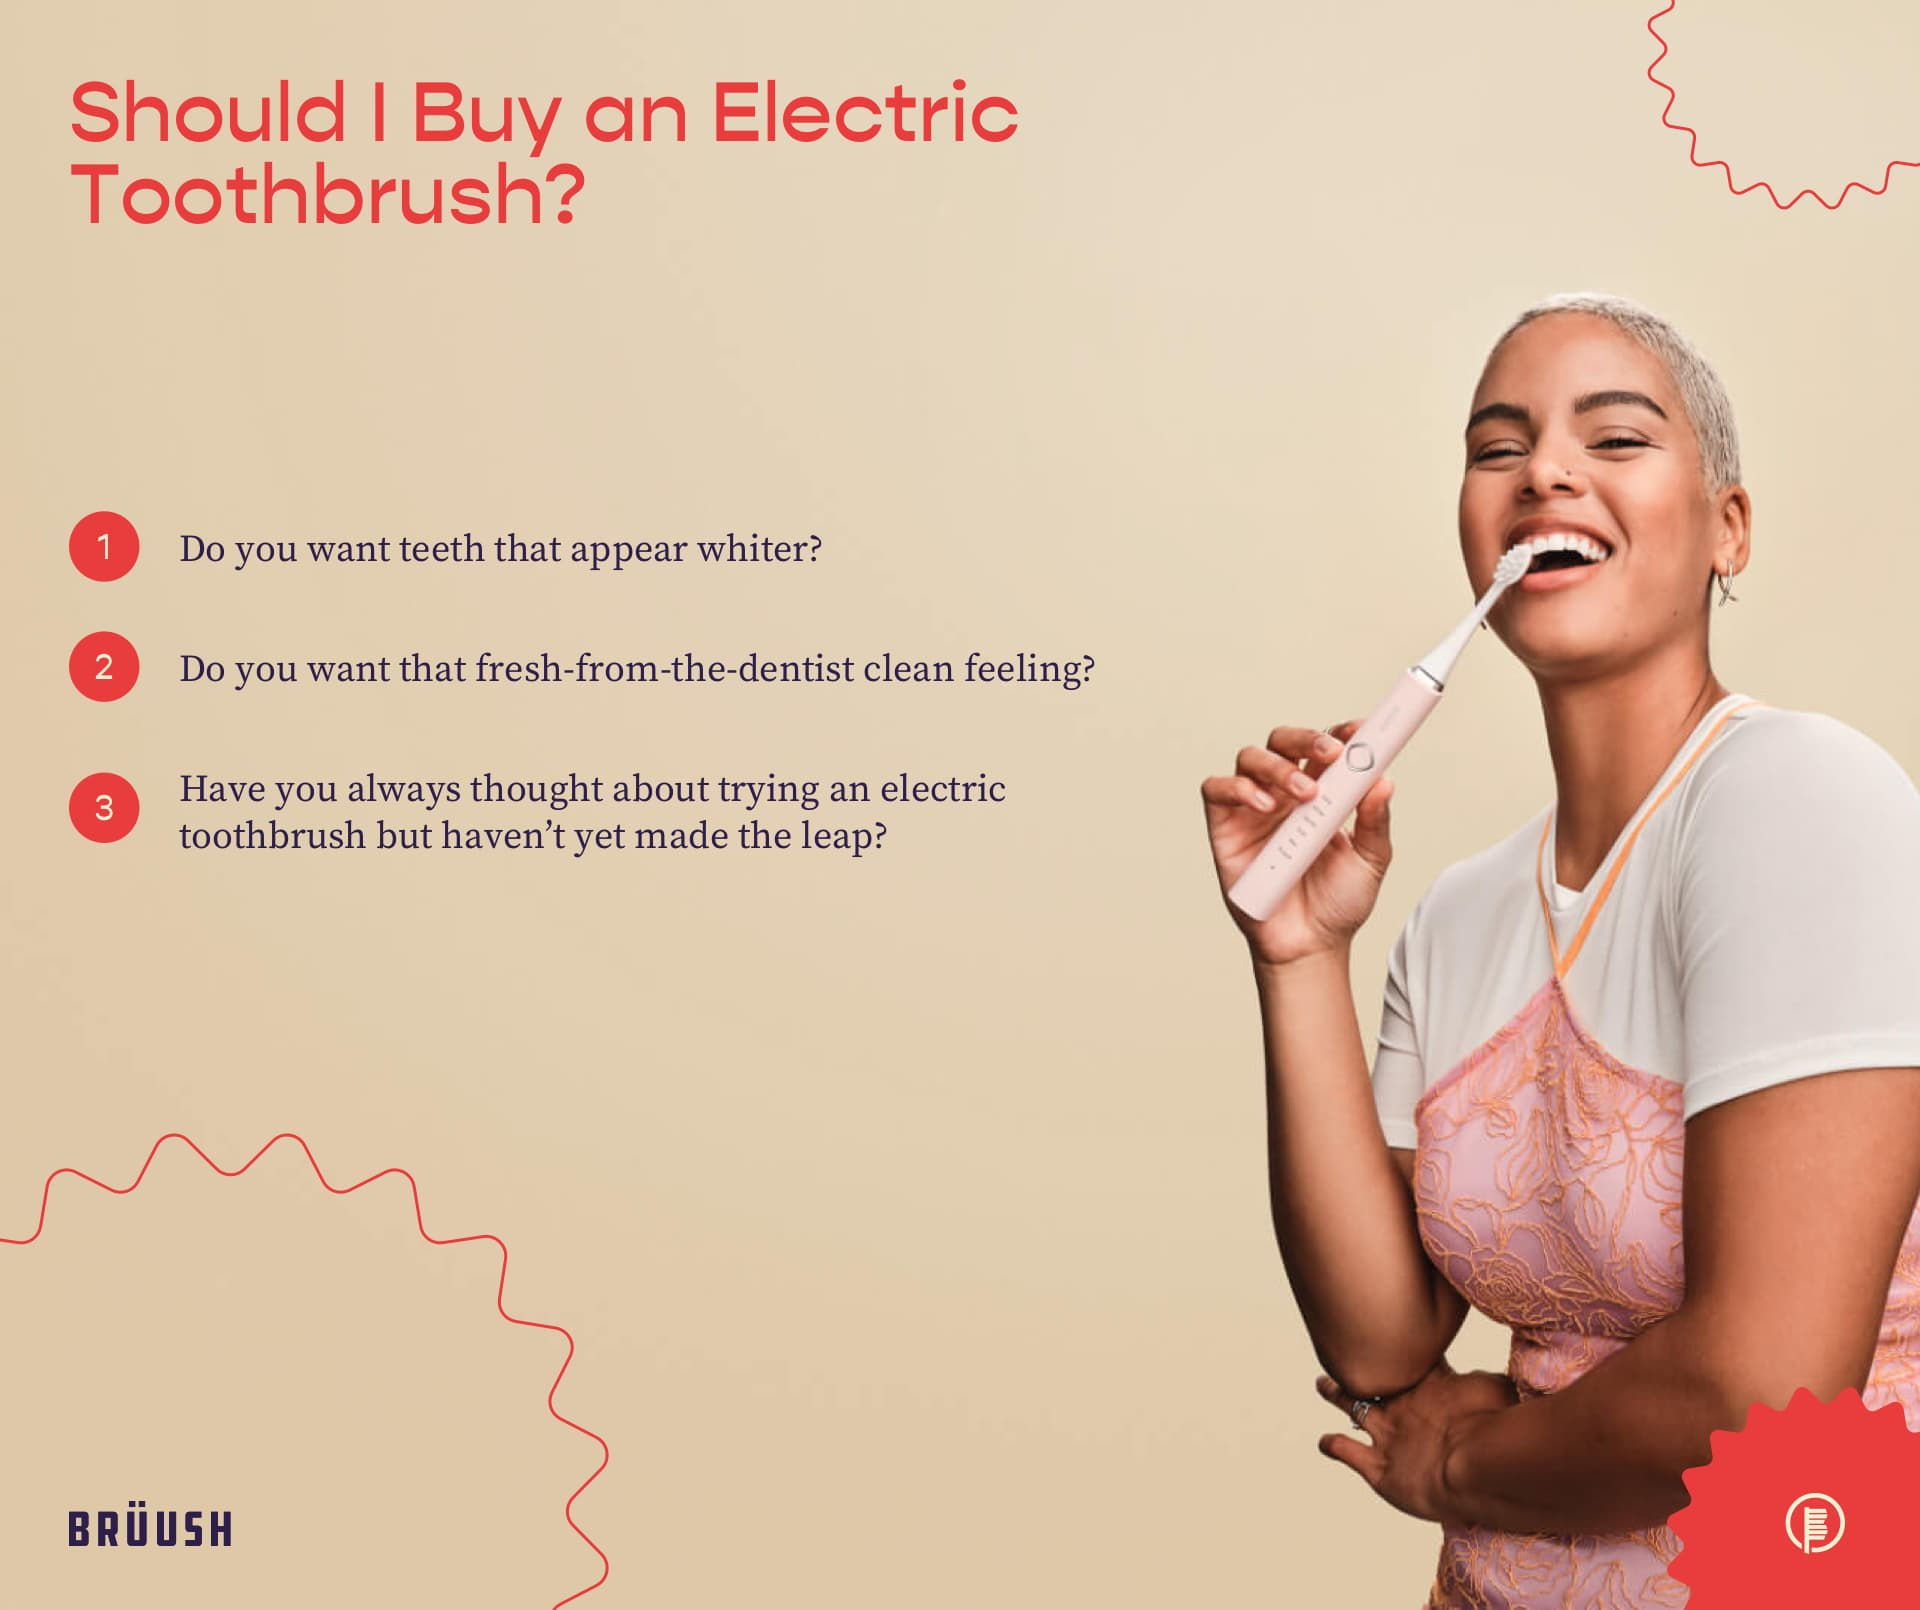 questions to ask yourself about buying an electric toothbrush